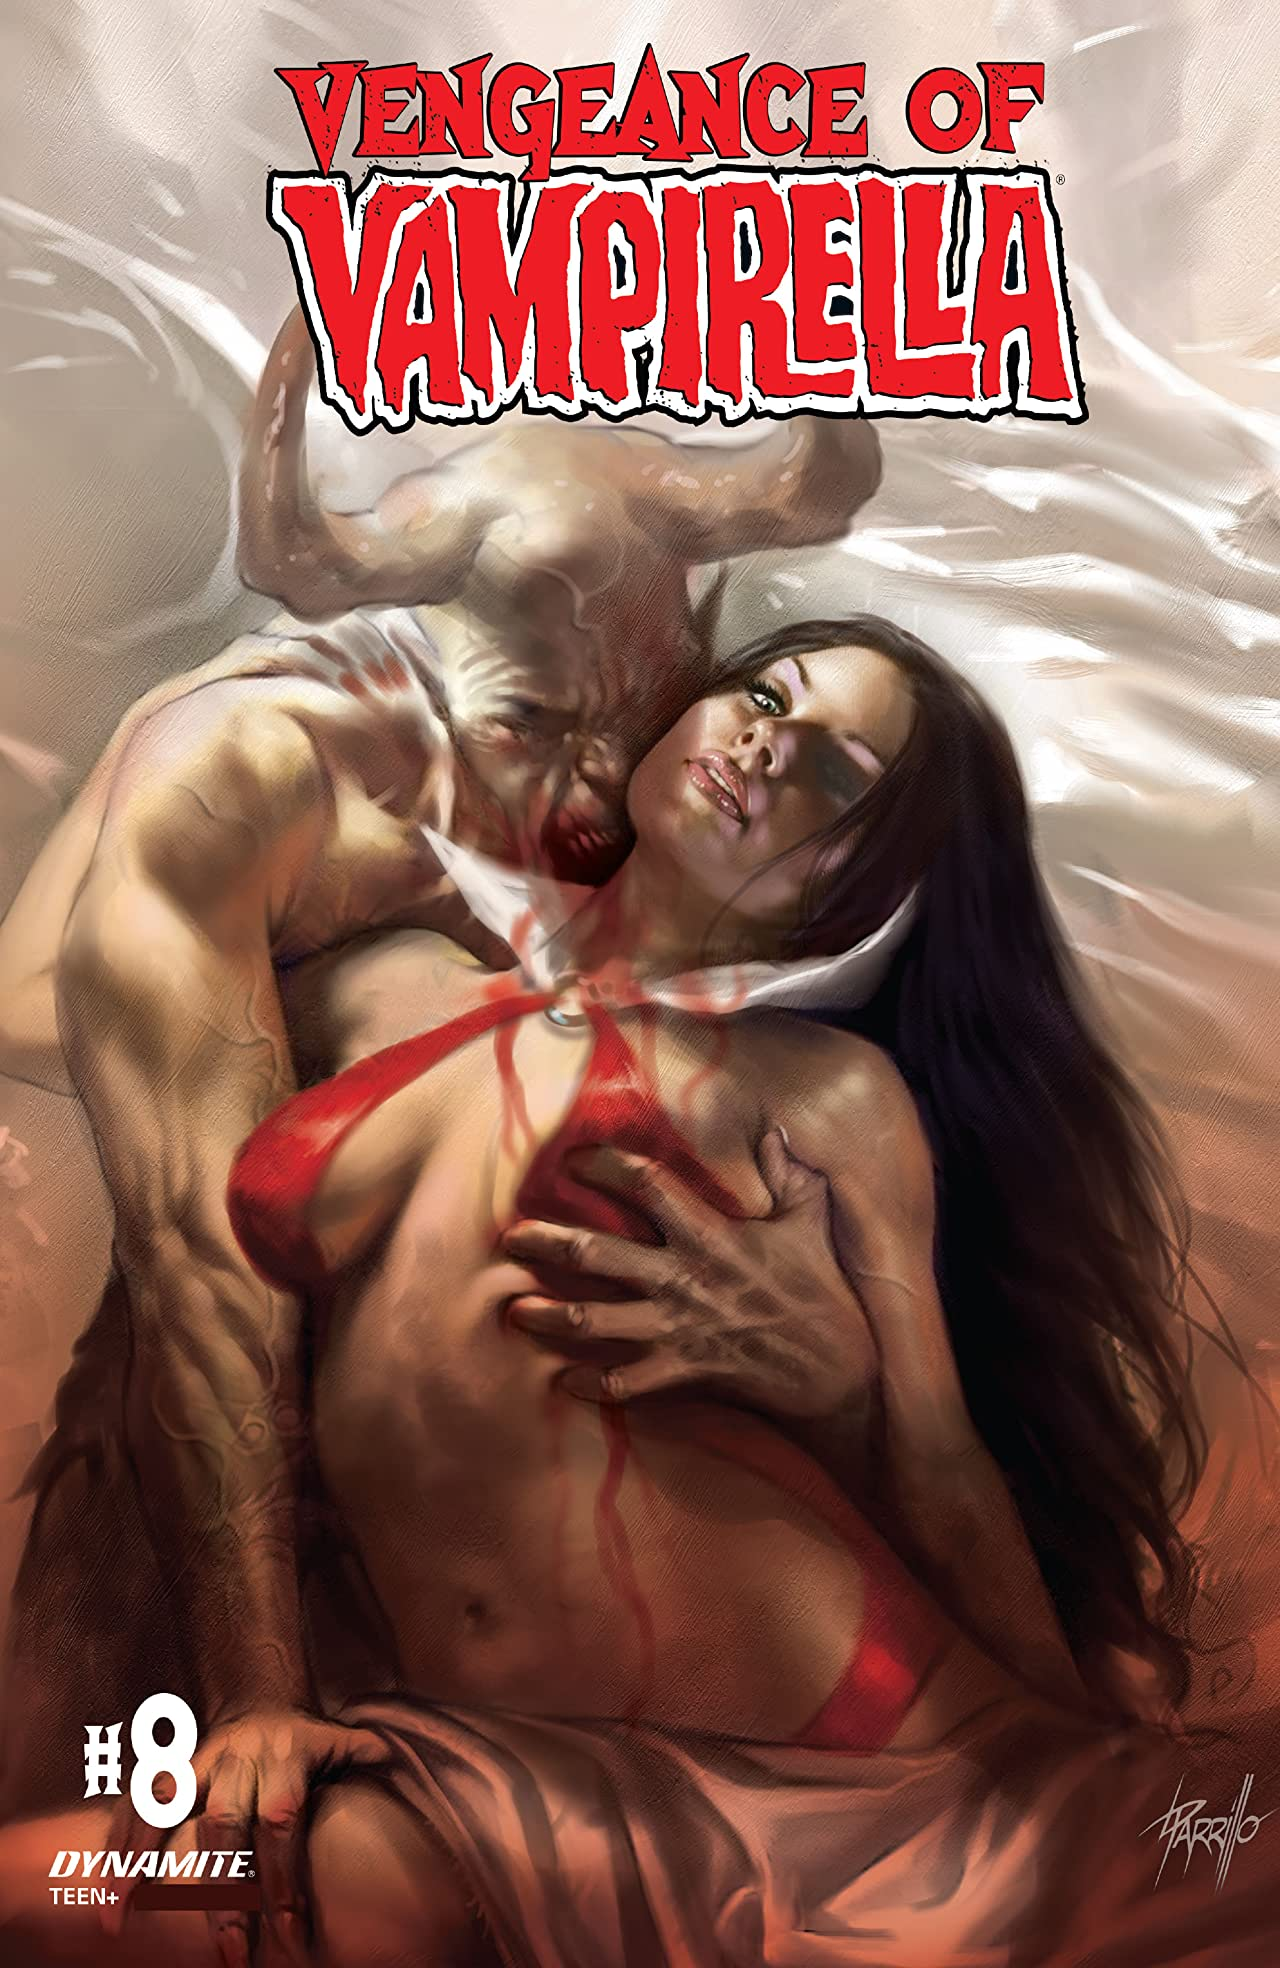 Vengeance of Vampirella #8